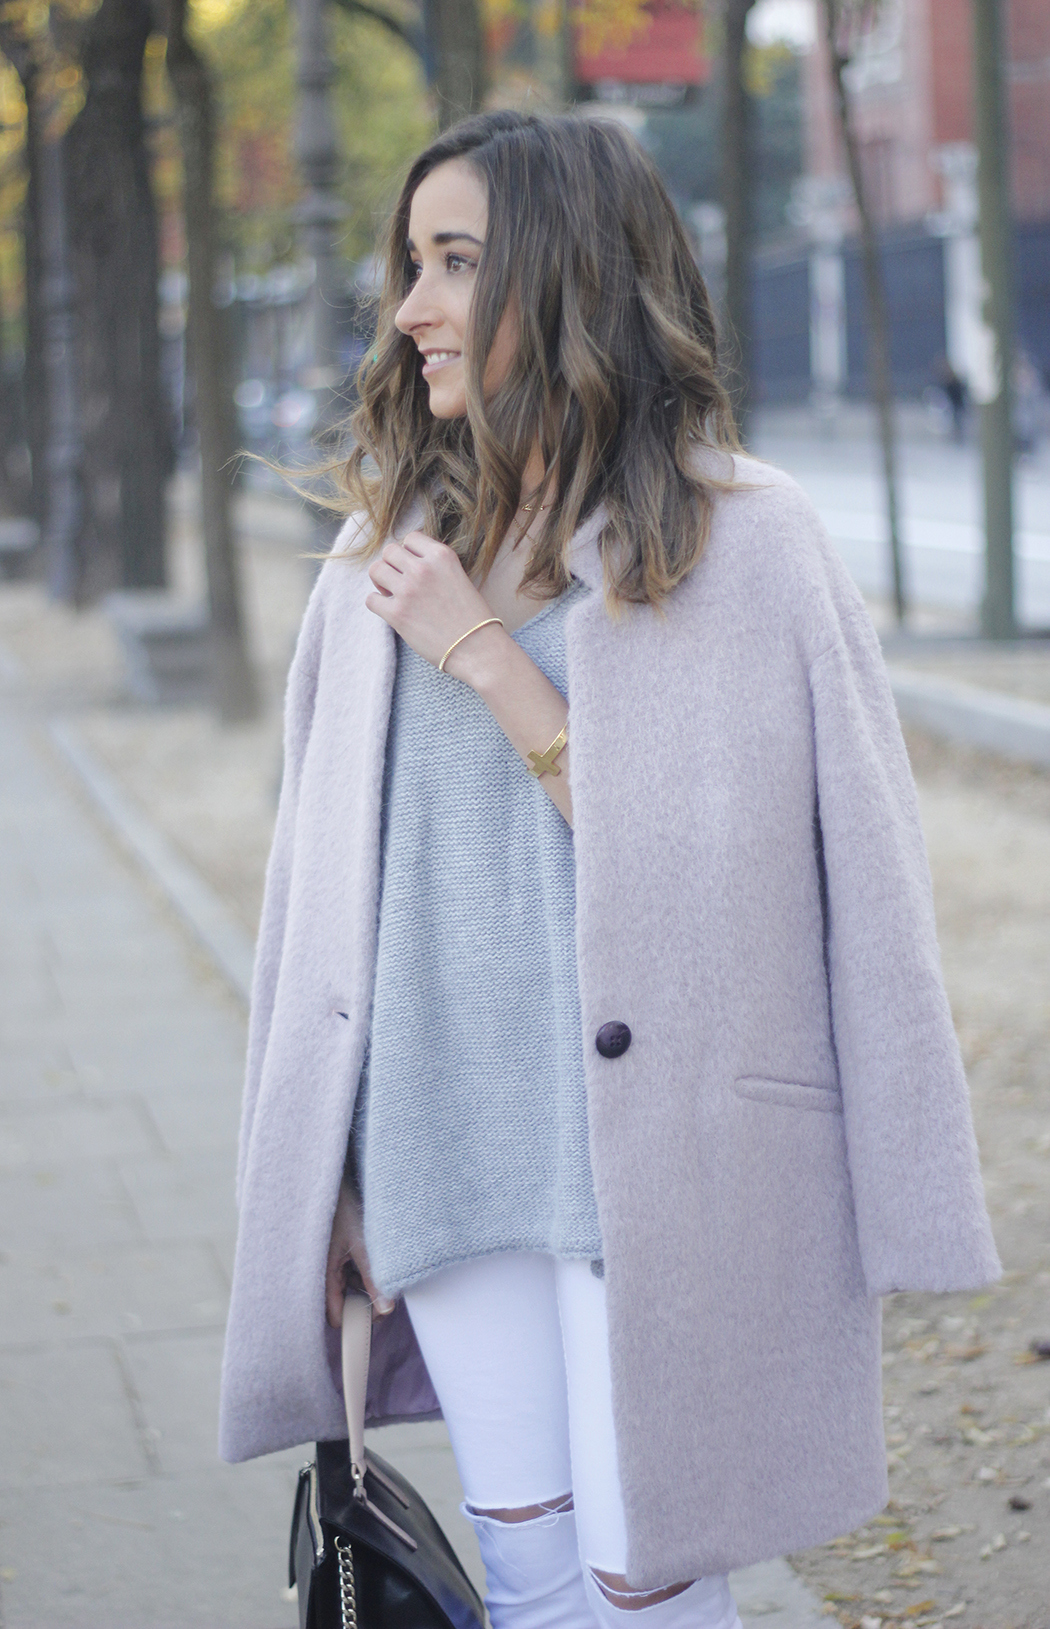 Tintoretto Pink Coat white jeans grey sweater outfit04